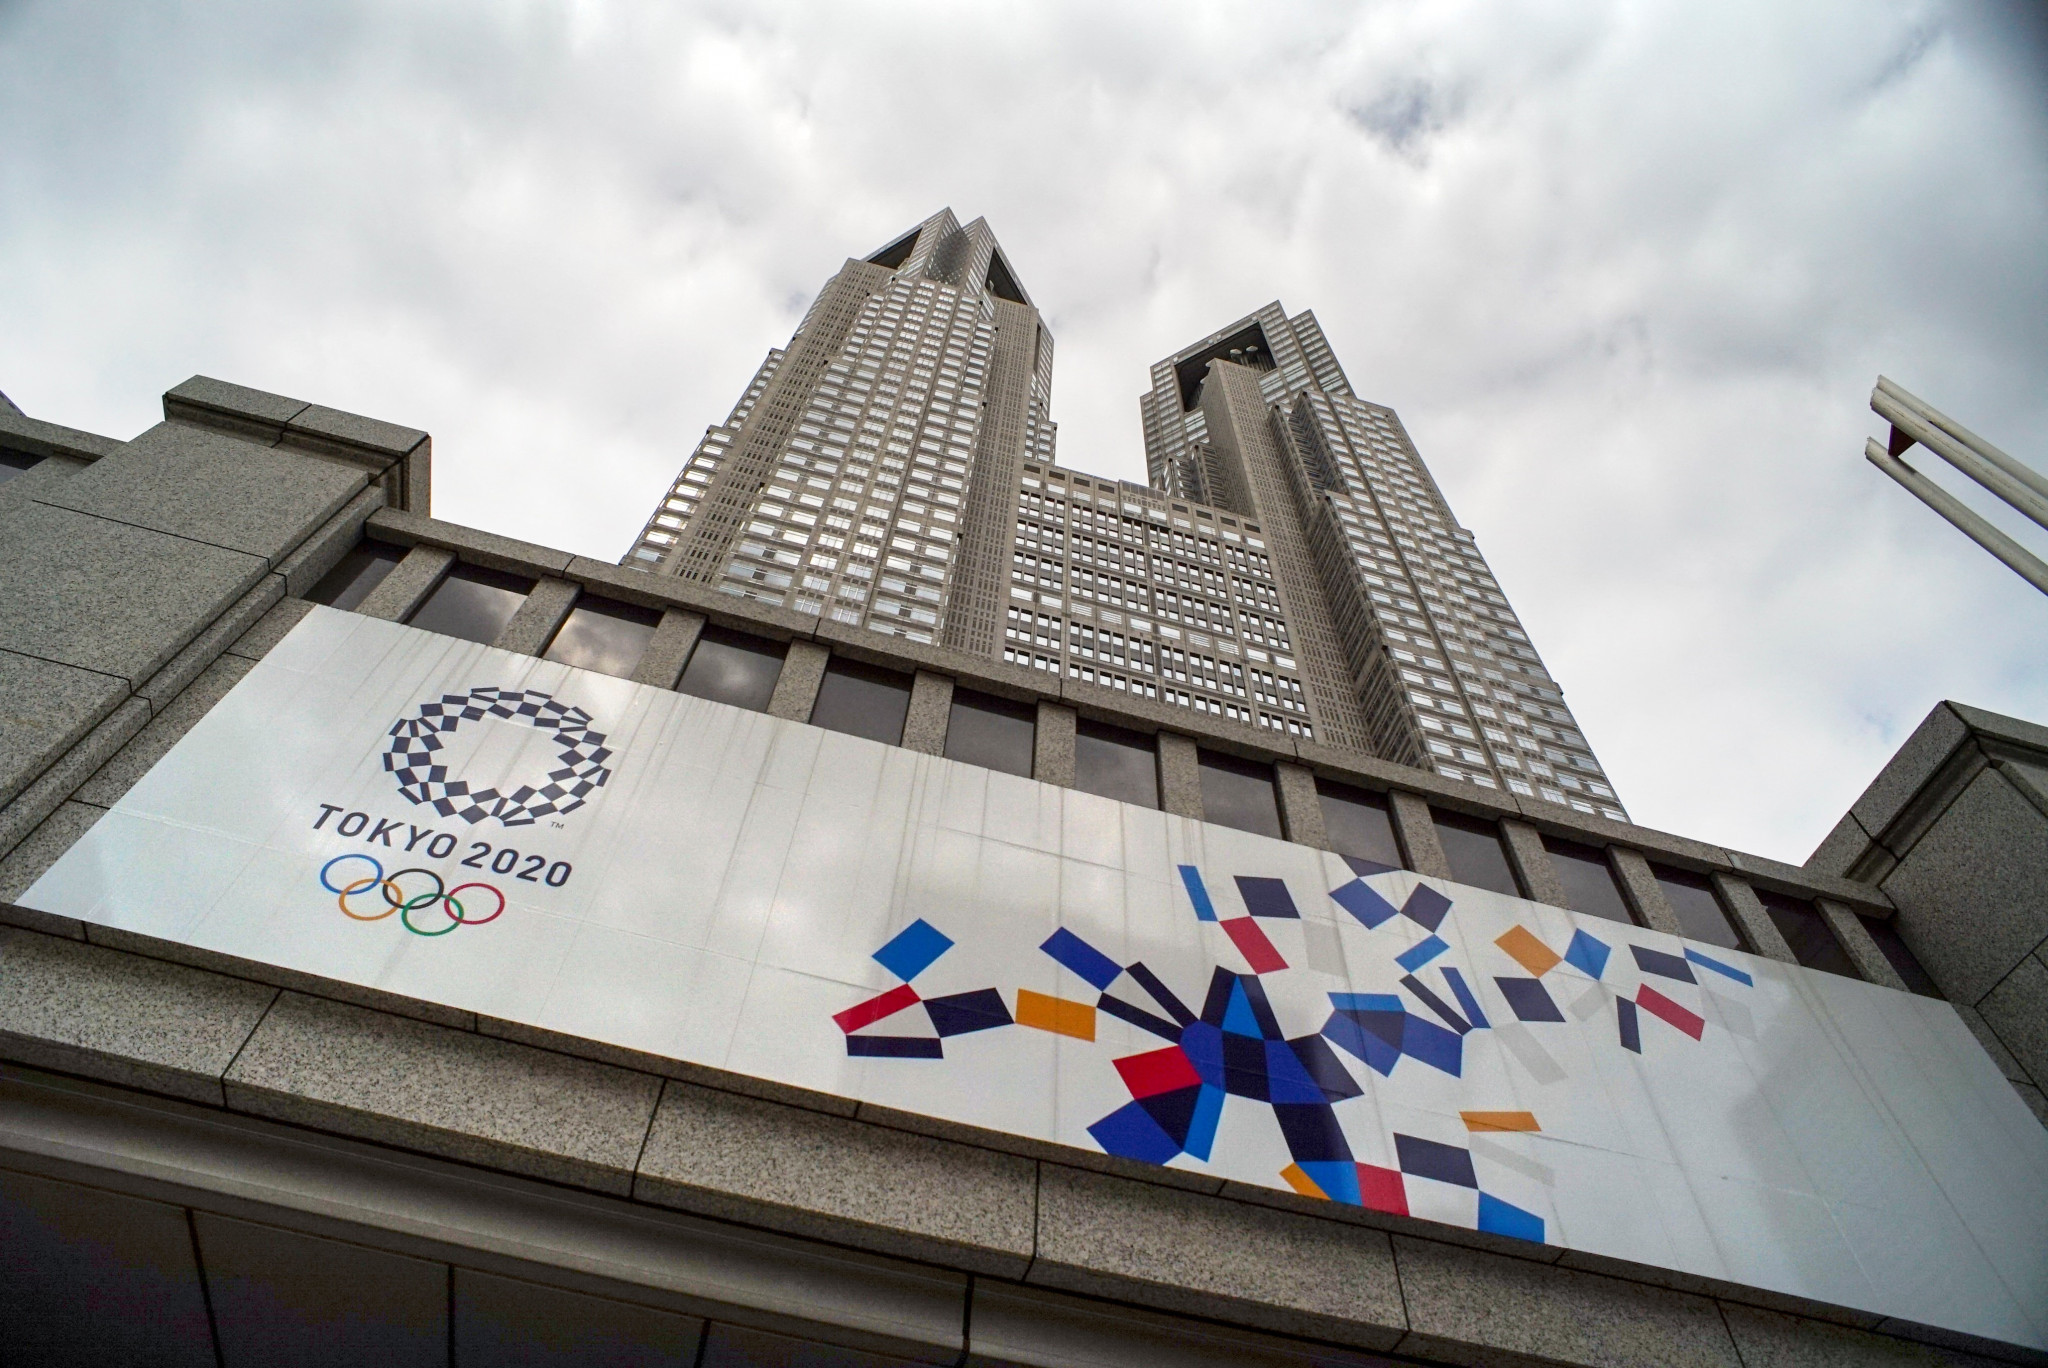 Evidence of vaccination or negative COVID-19 test may be required for Tokyo 2020 spectators